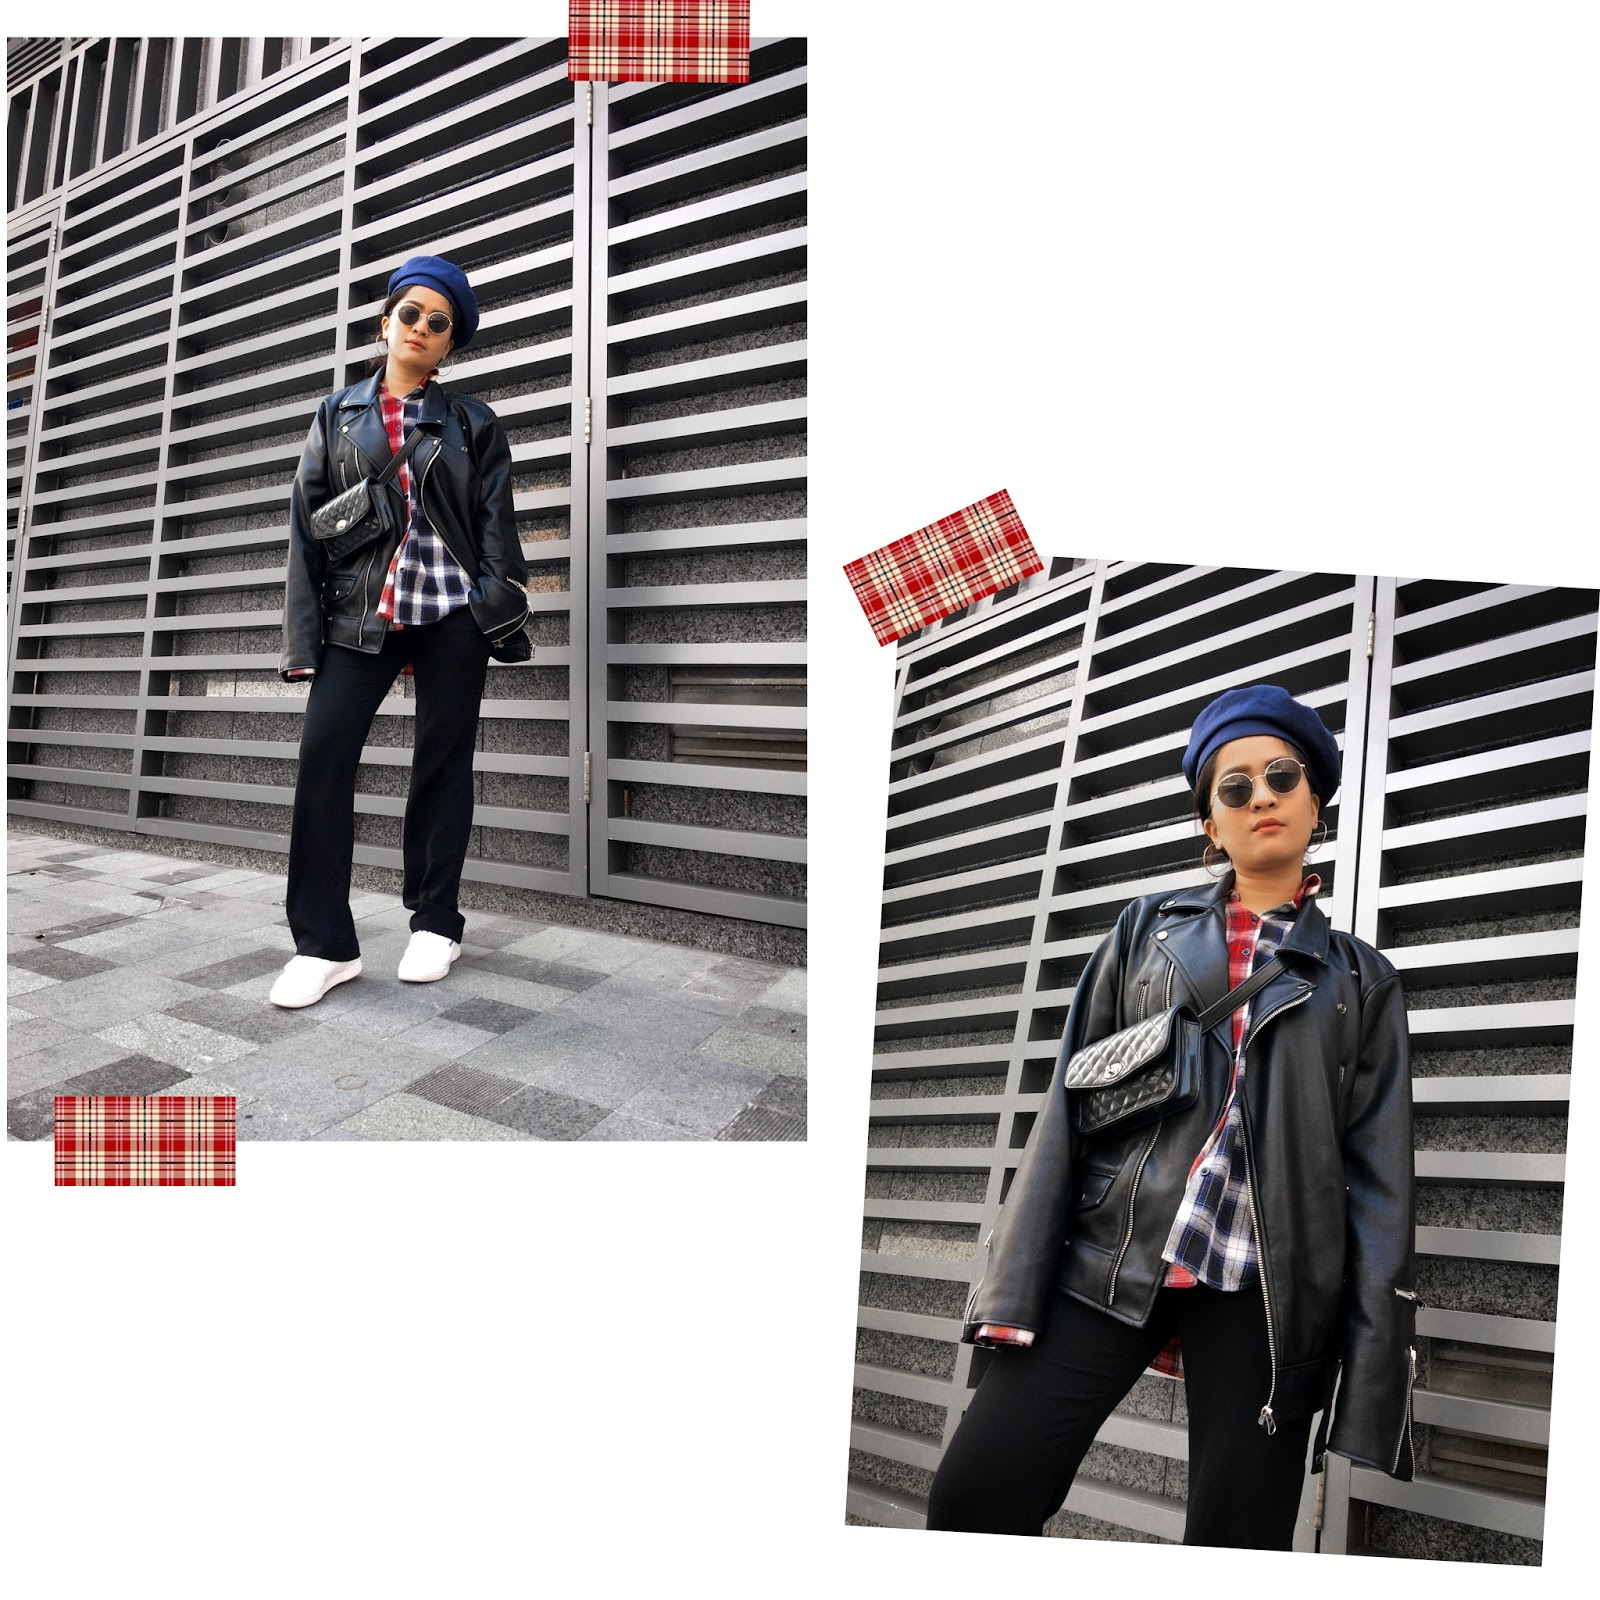 macau fashion blogger wearing plaid outfits